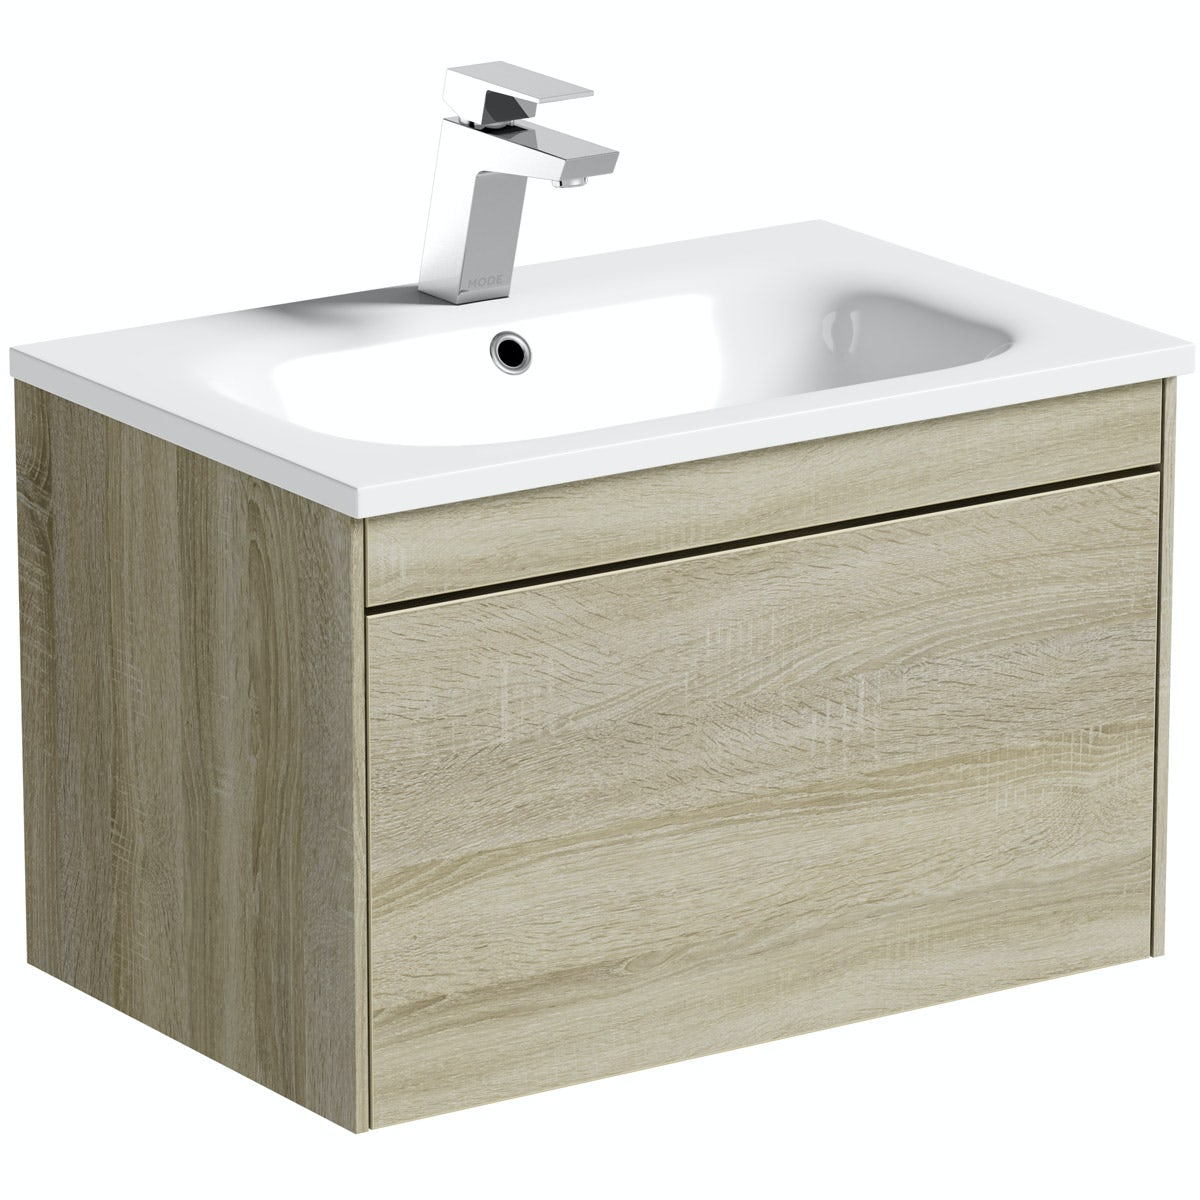 Mode Austin oak wall hung vanity unit and stone basin 600mm